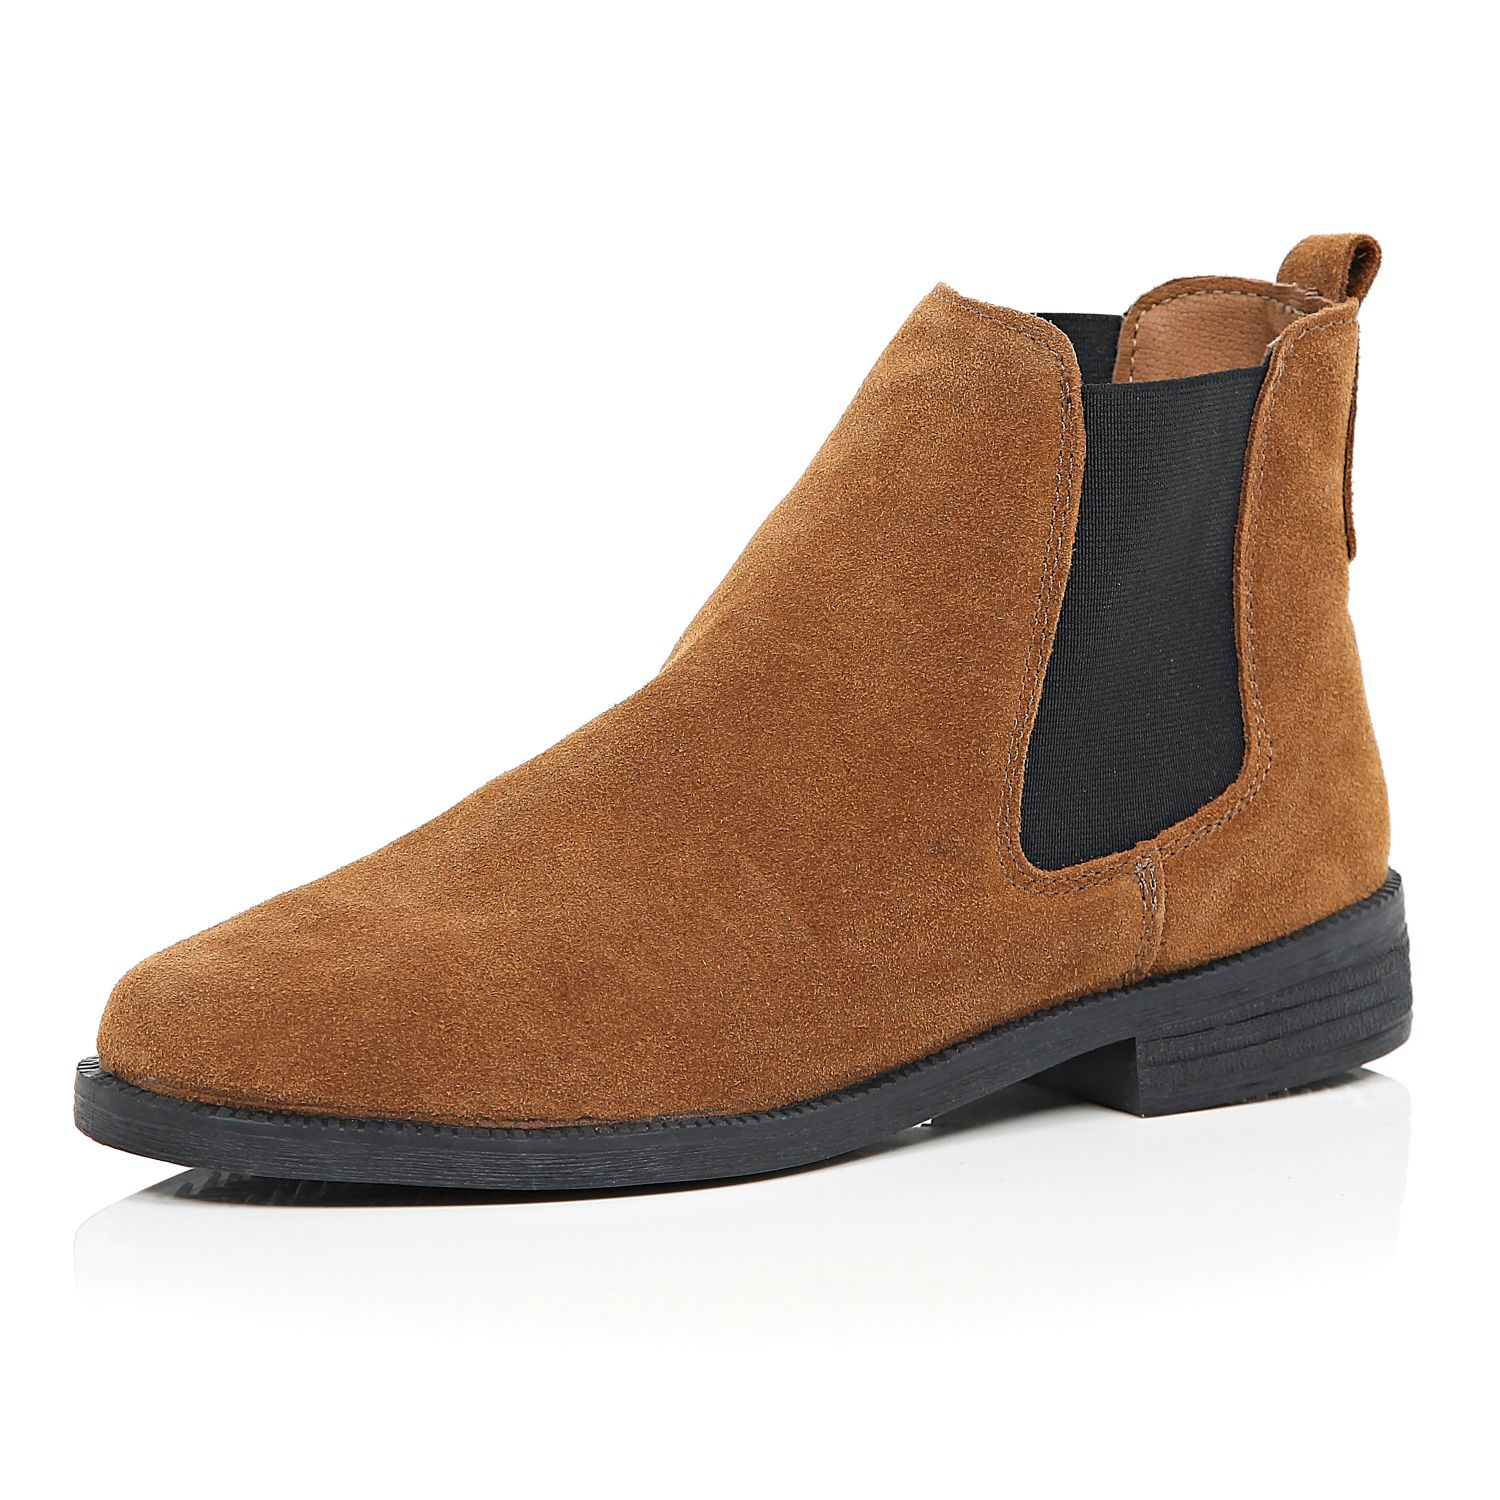 lyst river island tan brown suede chelsea boots in natural. Black Bedroom Furniture Sets. Home Design Ideas